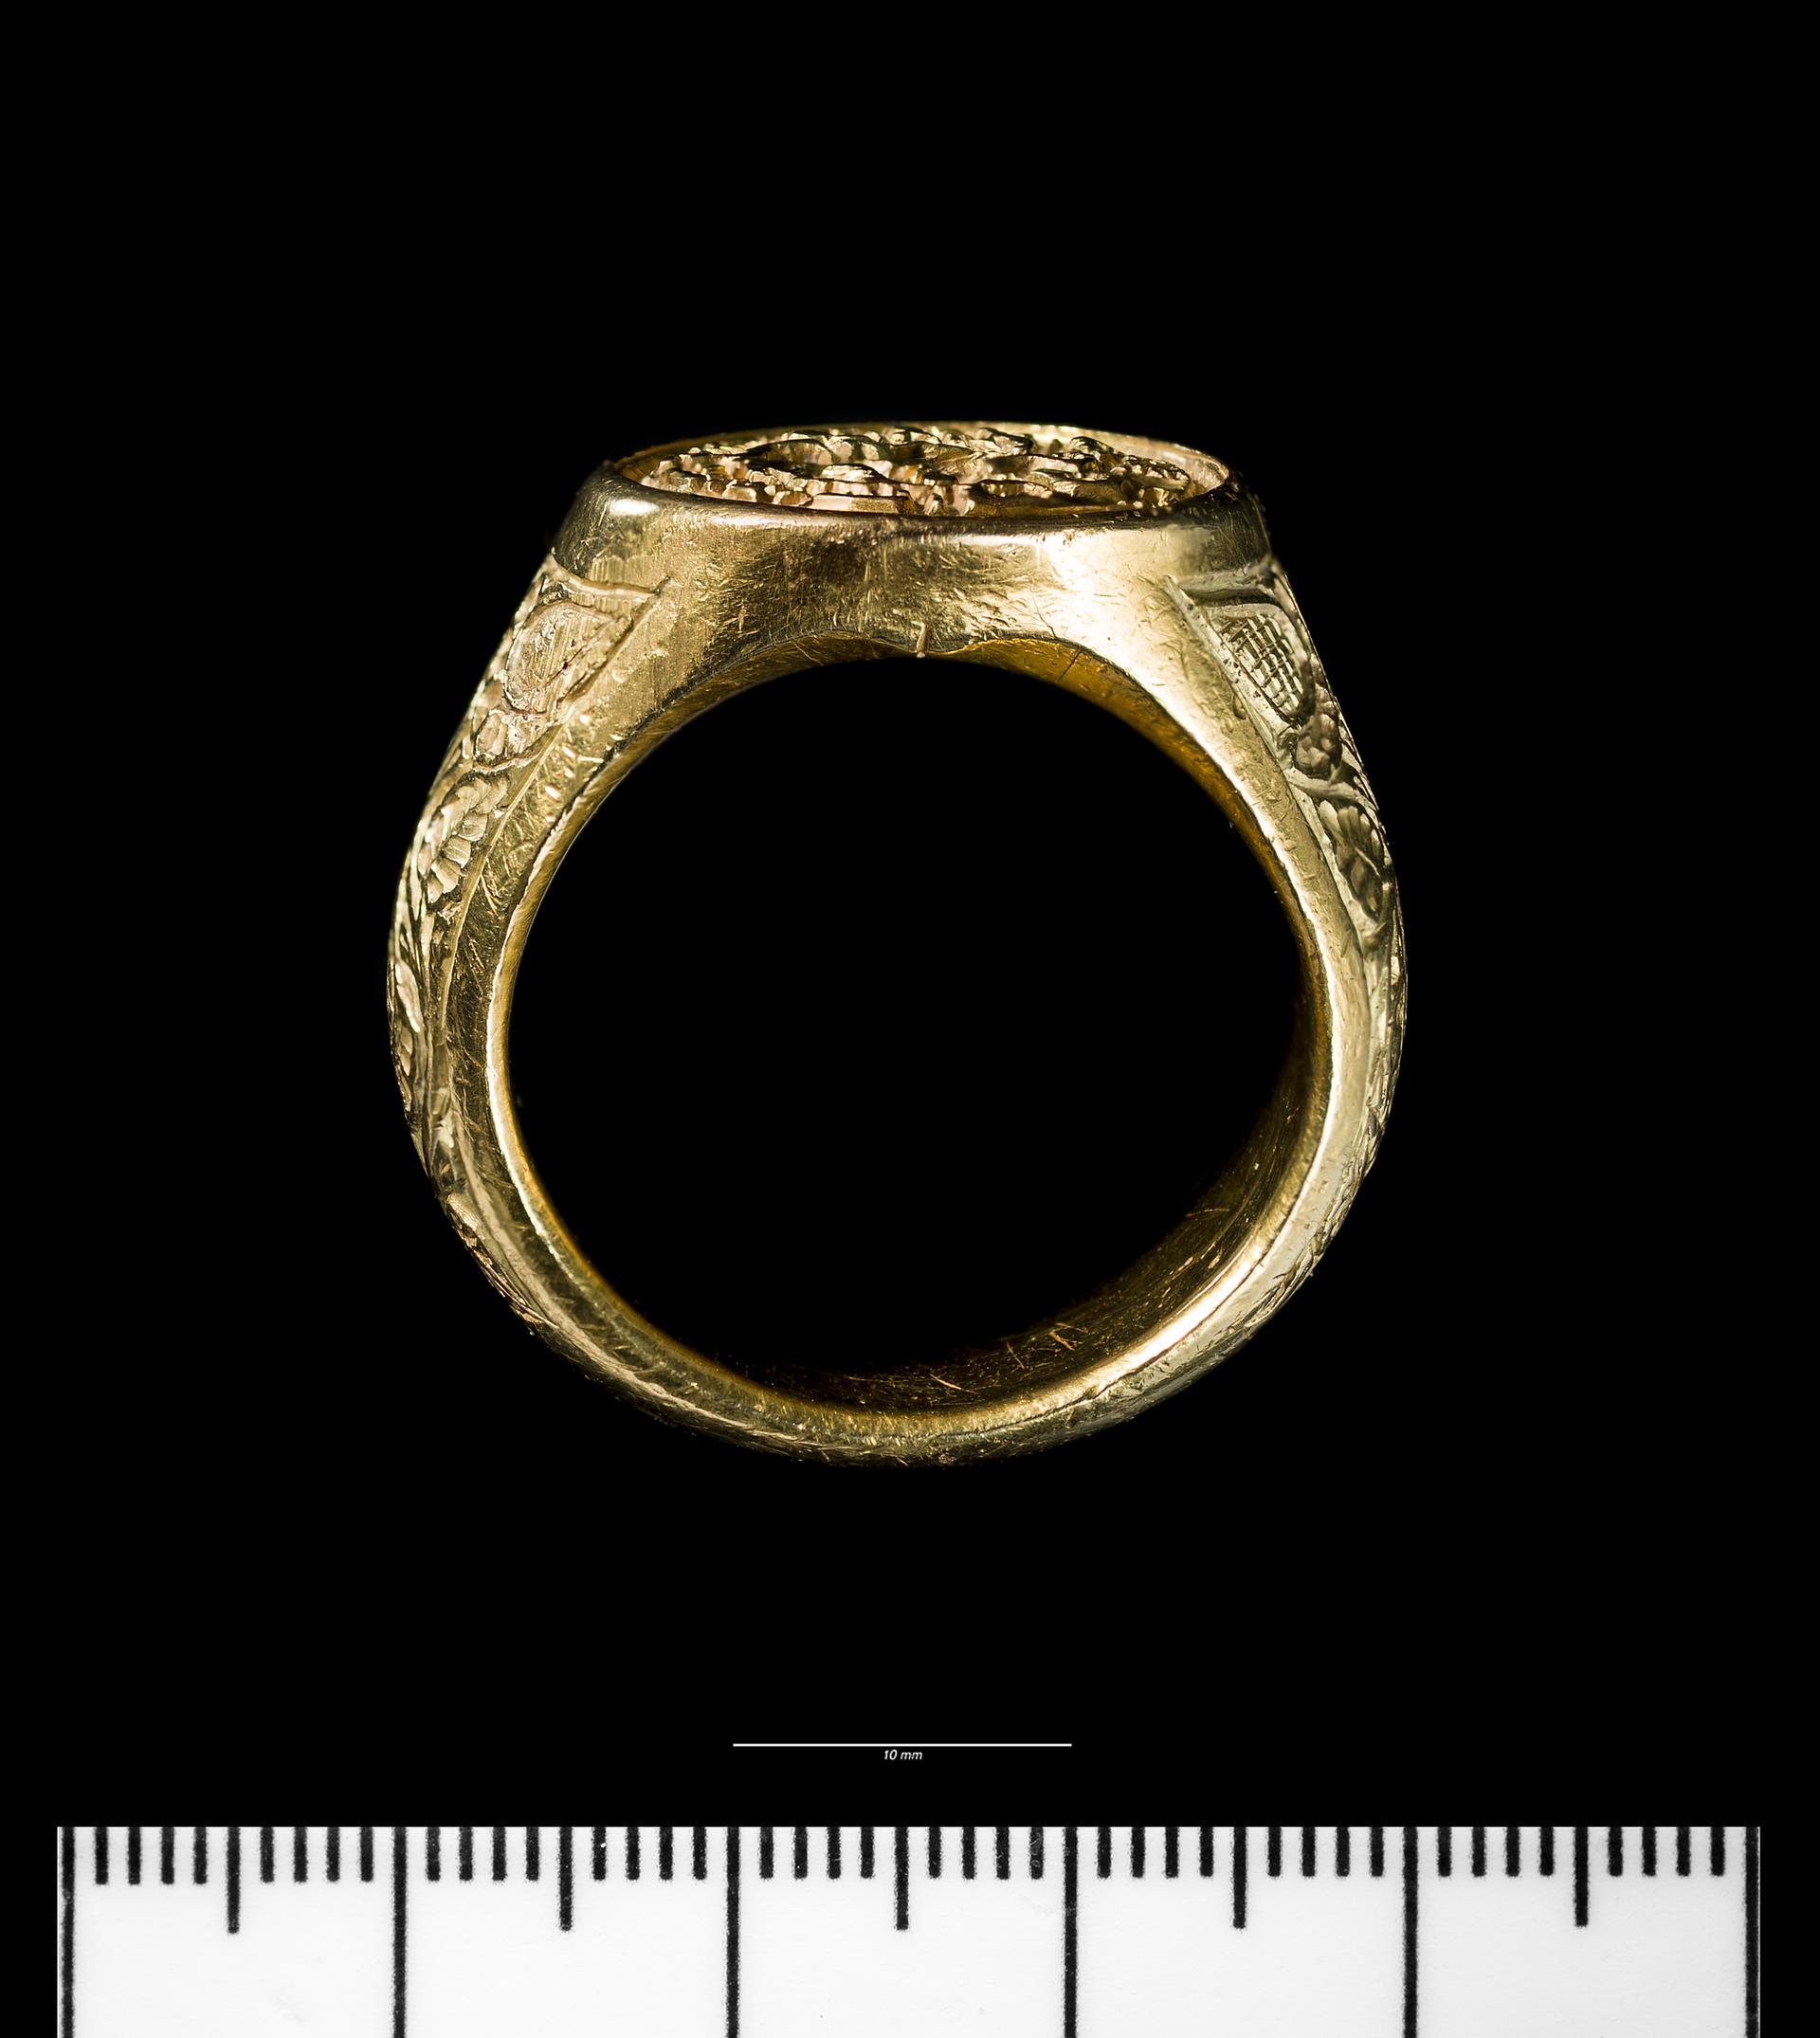 Open the image &lsquoMedieval gold signet ring'